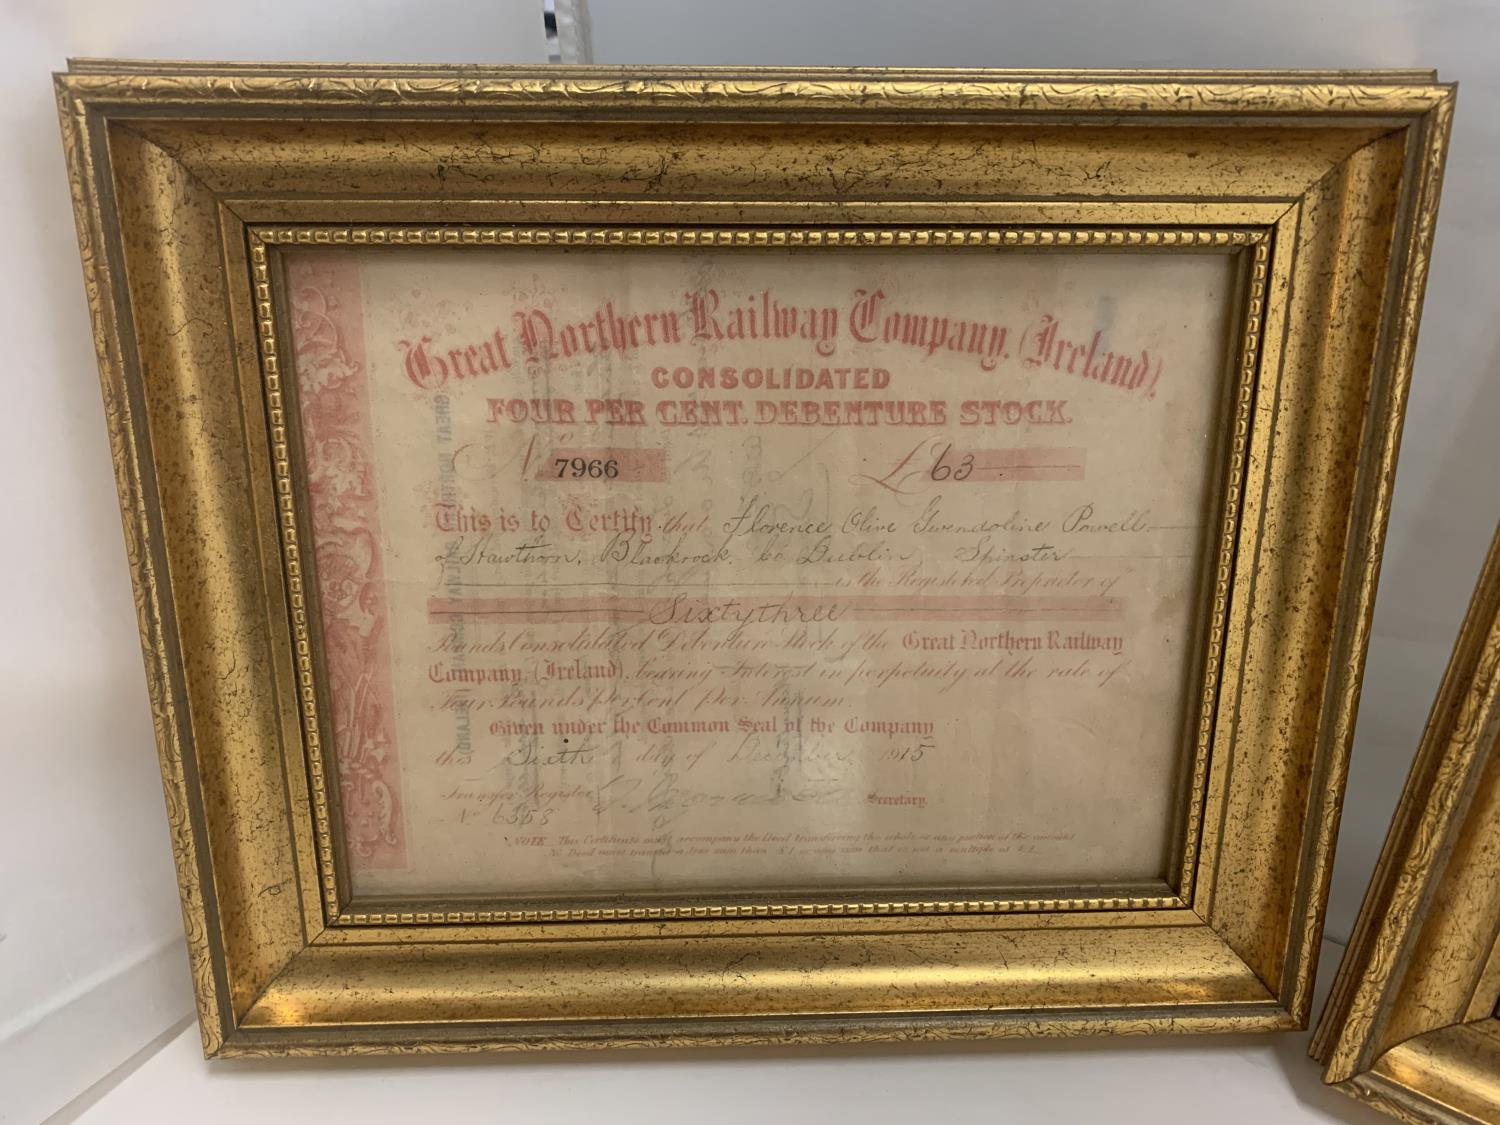 TWO GILT FRAMED GREAT NORTHERN RAILWAY SHARES CERTIFICATES - Image 4 of 6